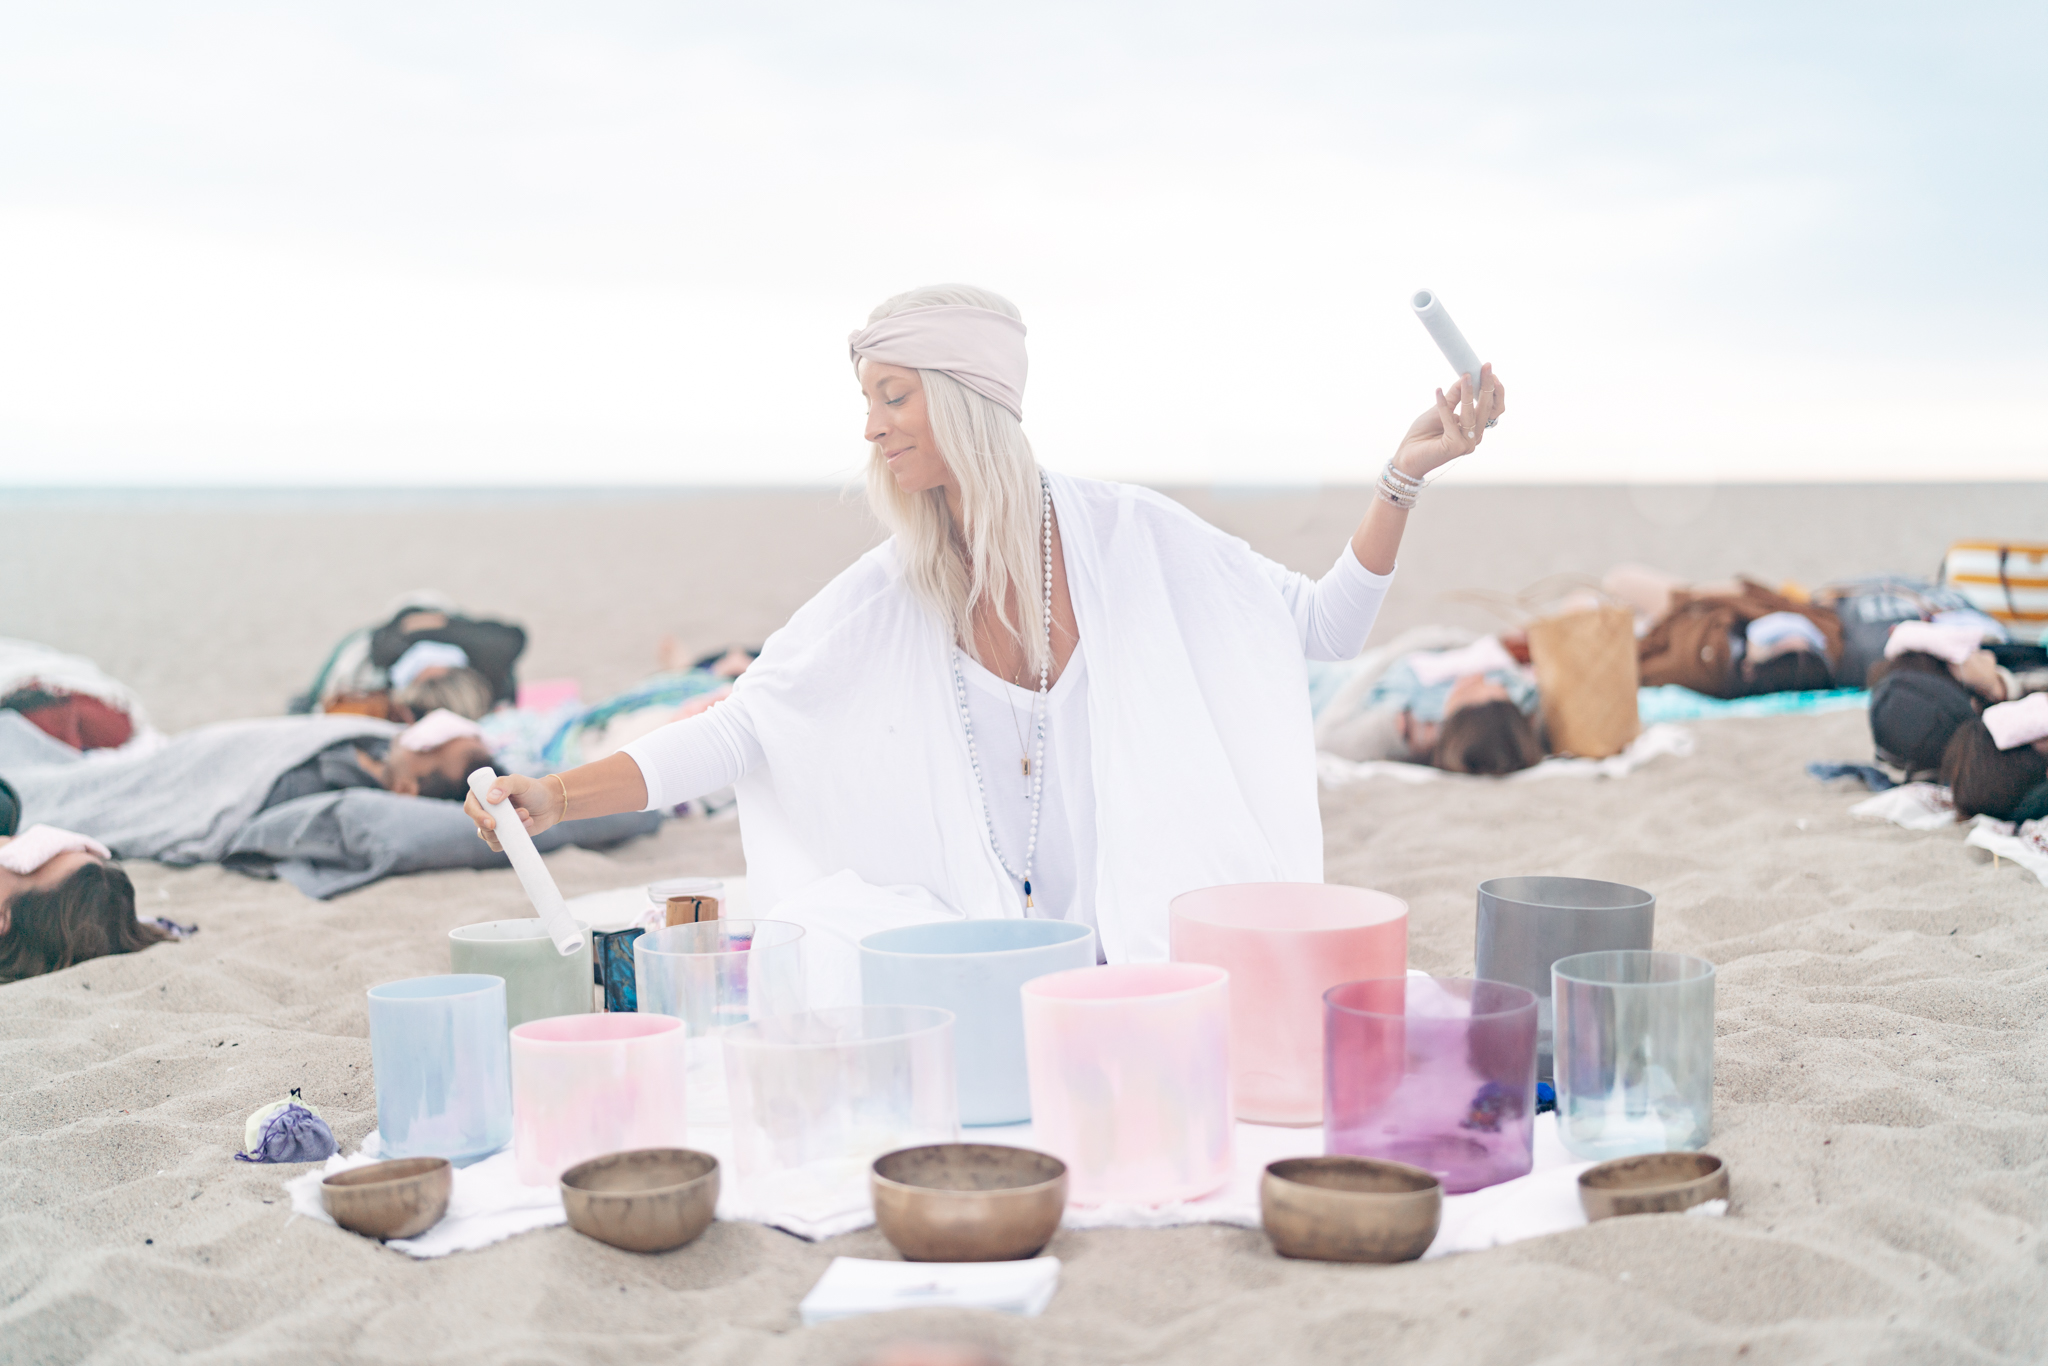 Julie Magnussen Photography Los Angeles Wellness Brands Events, Retreats, Workshops, Portraits, Lifestyle